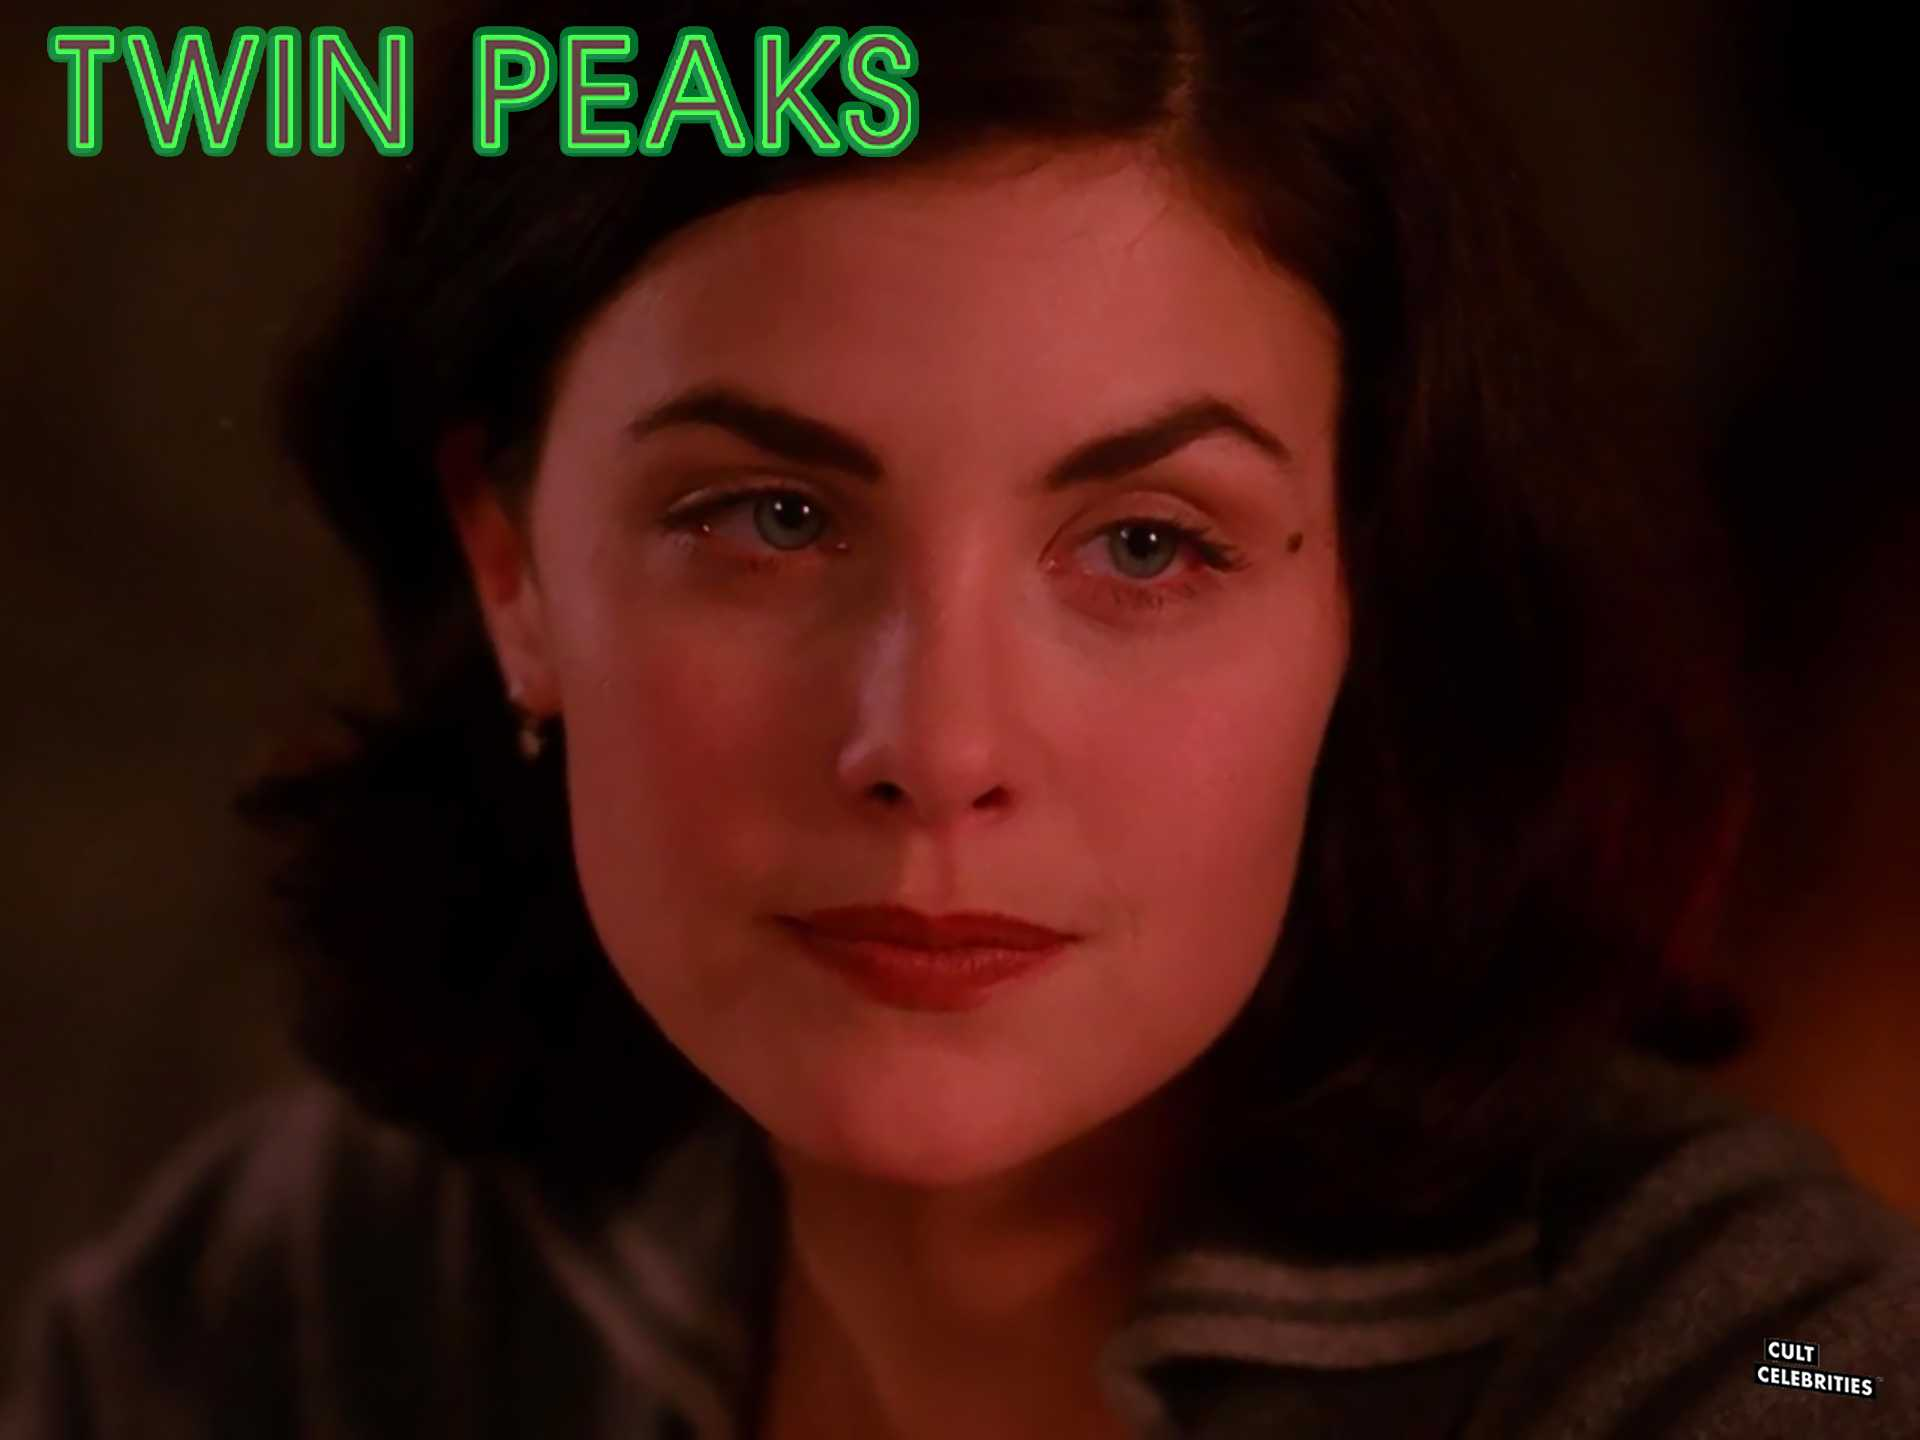 Sherilyn Fenn in Twin Peaks (1990)